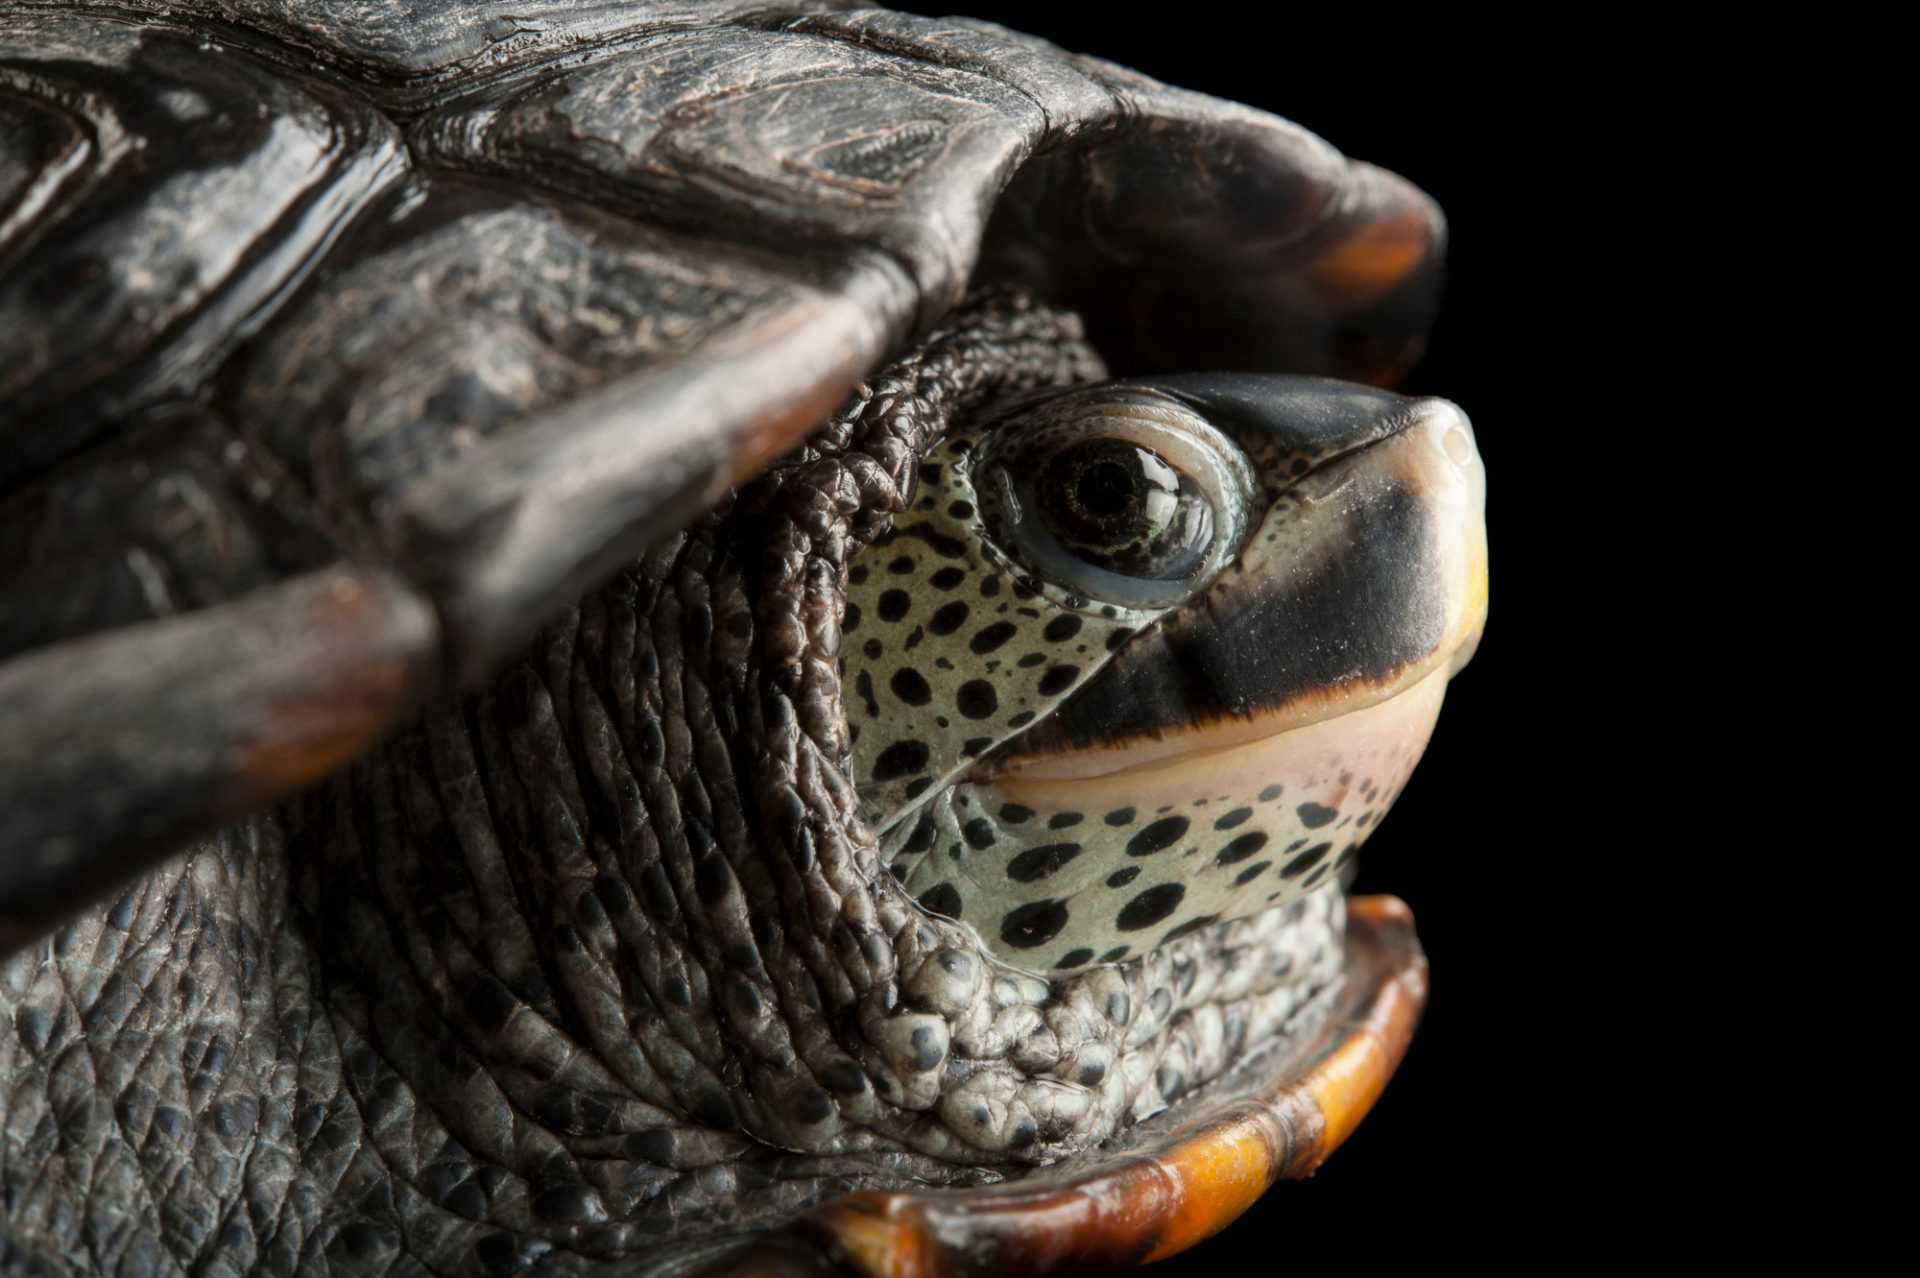 Picture of a Texas diamondback terrapin (Malaclemys terrapin littoralis) at the Houston Zoo.